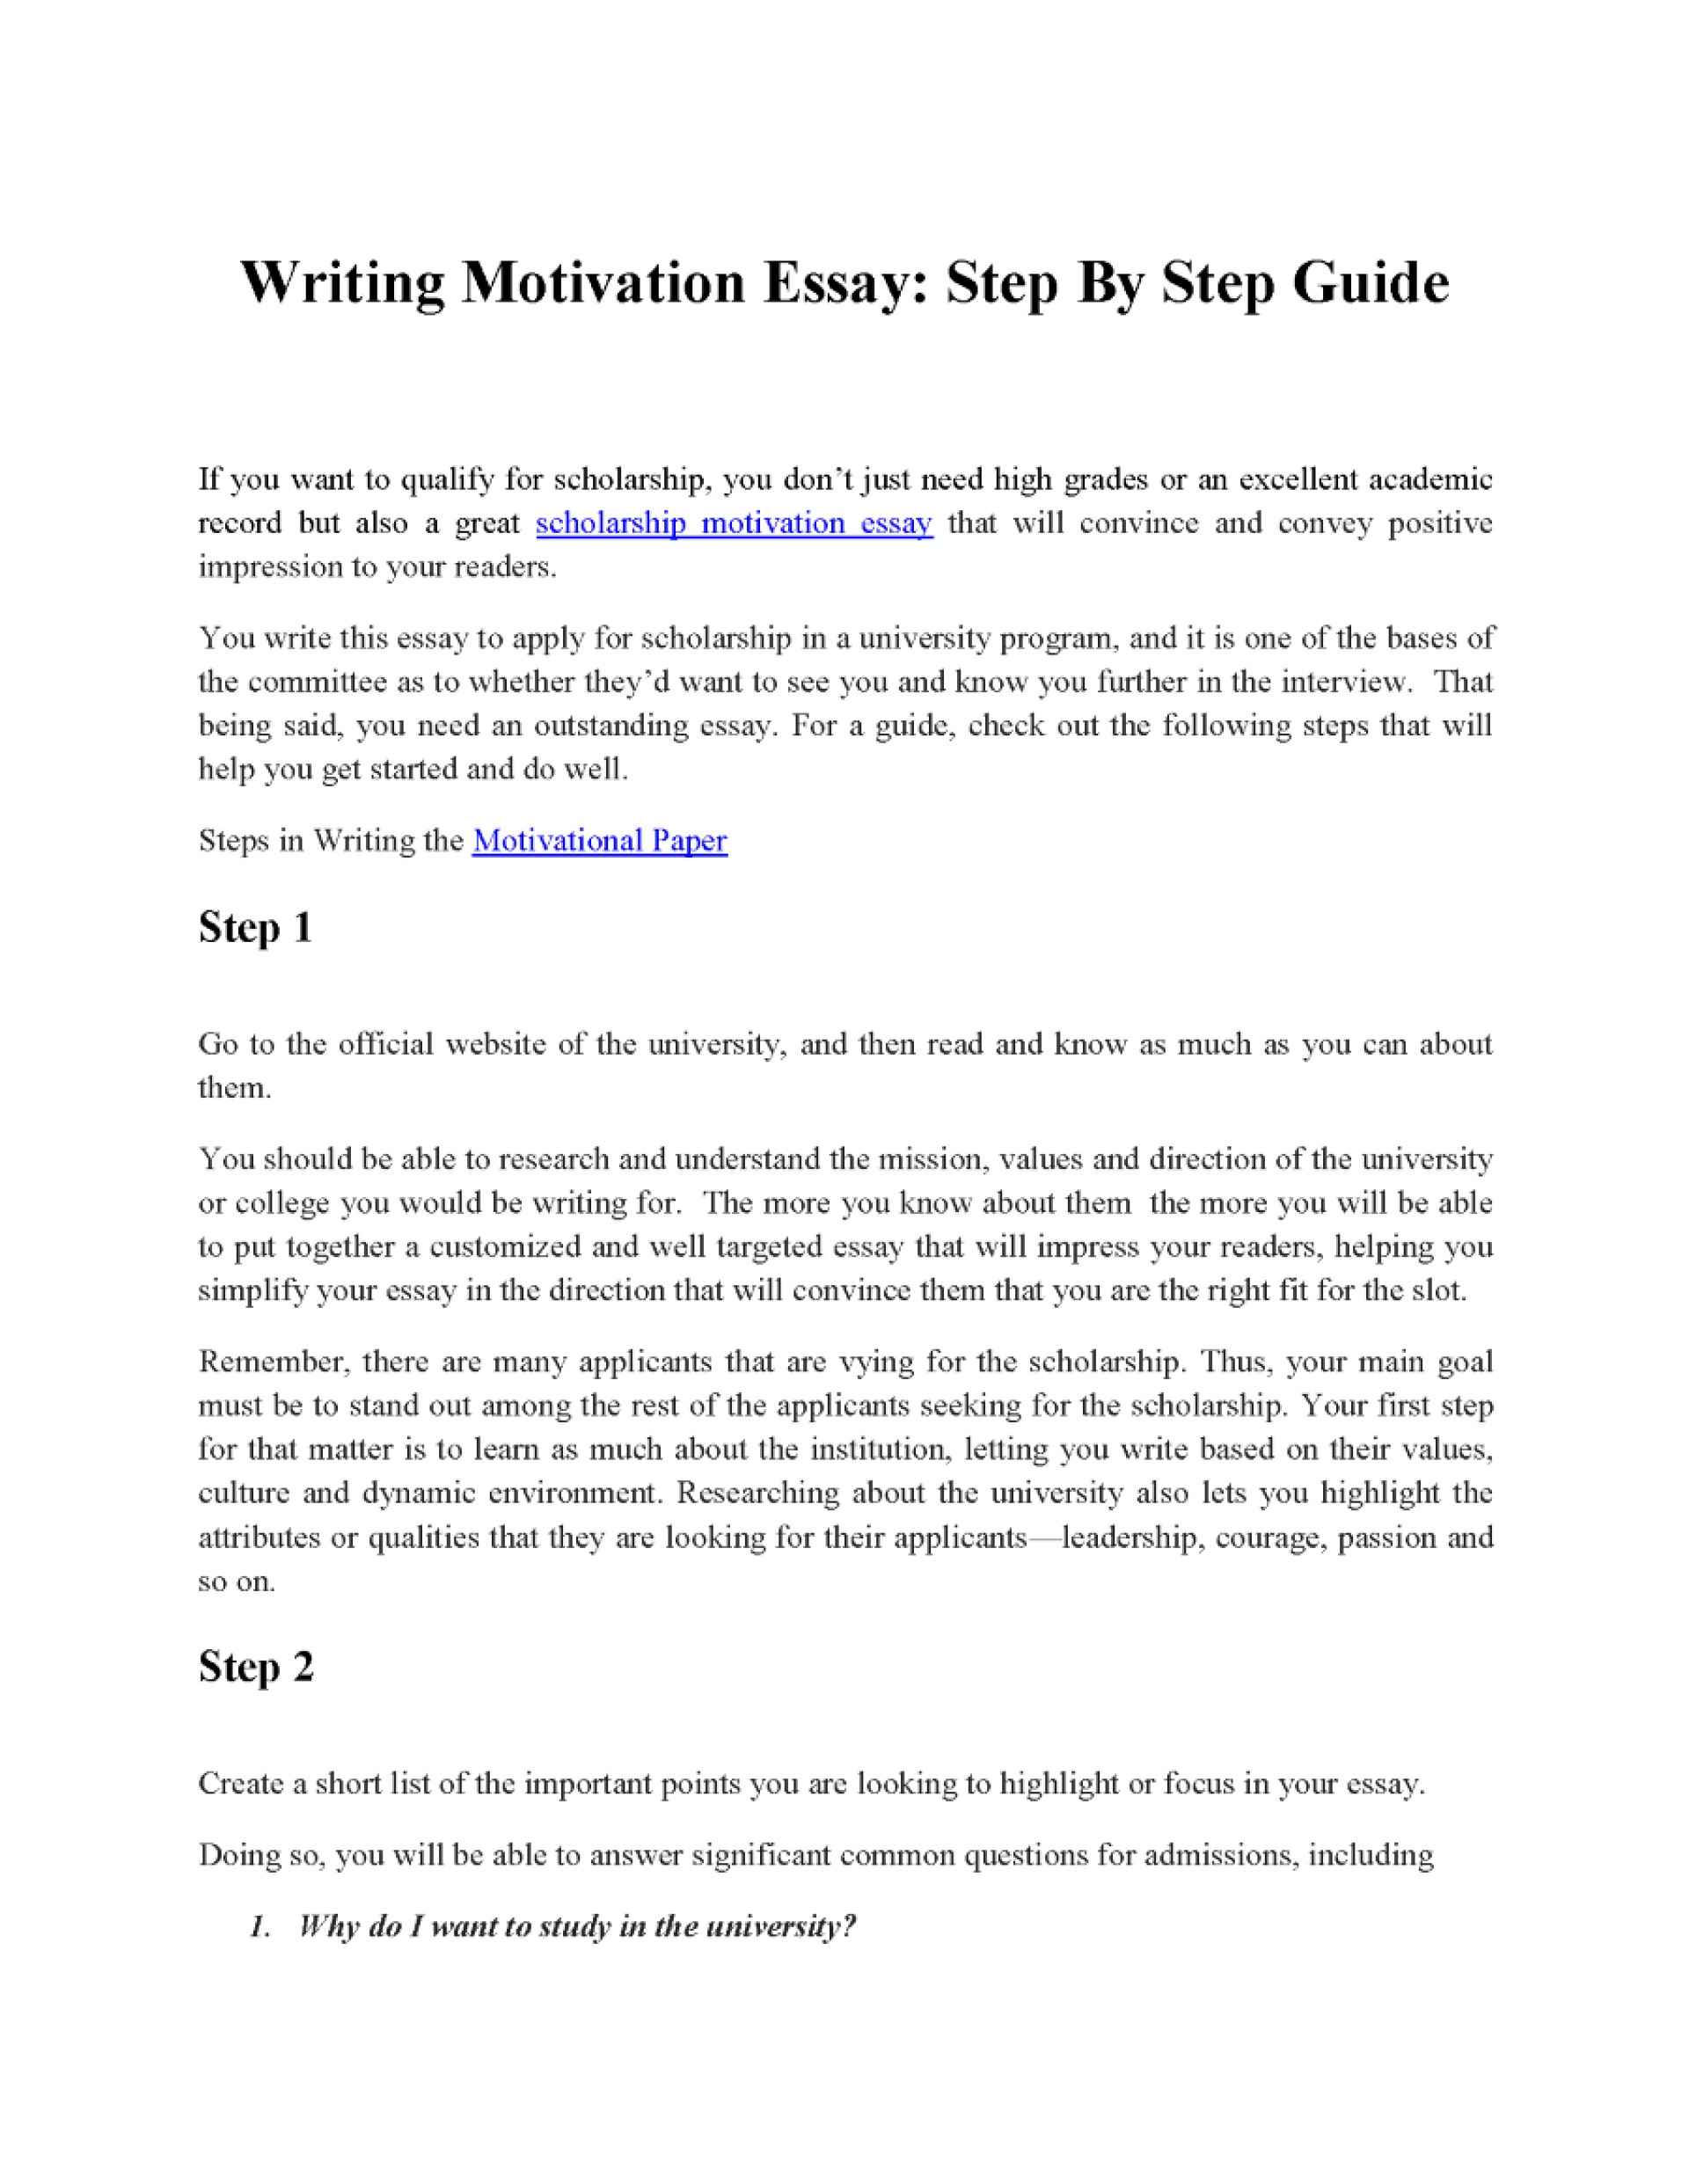 024 2948595 636128784141107500 Slide1 Fs Steps Writing Research Best 10 Paper To A Page Pdf 1920